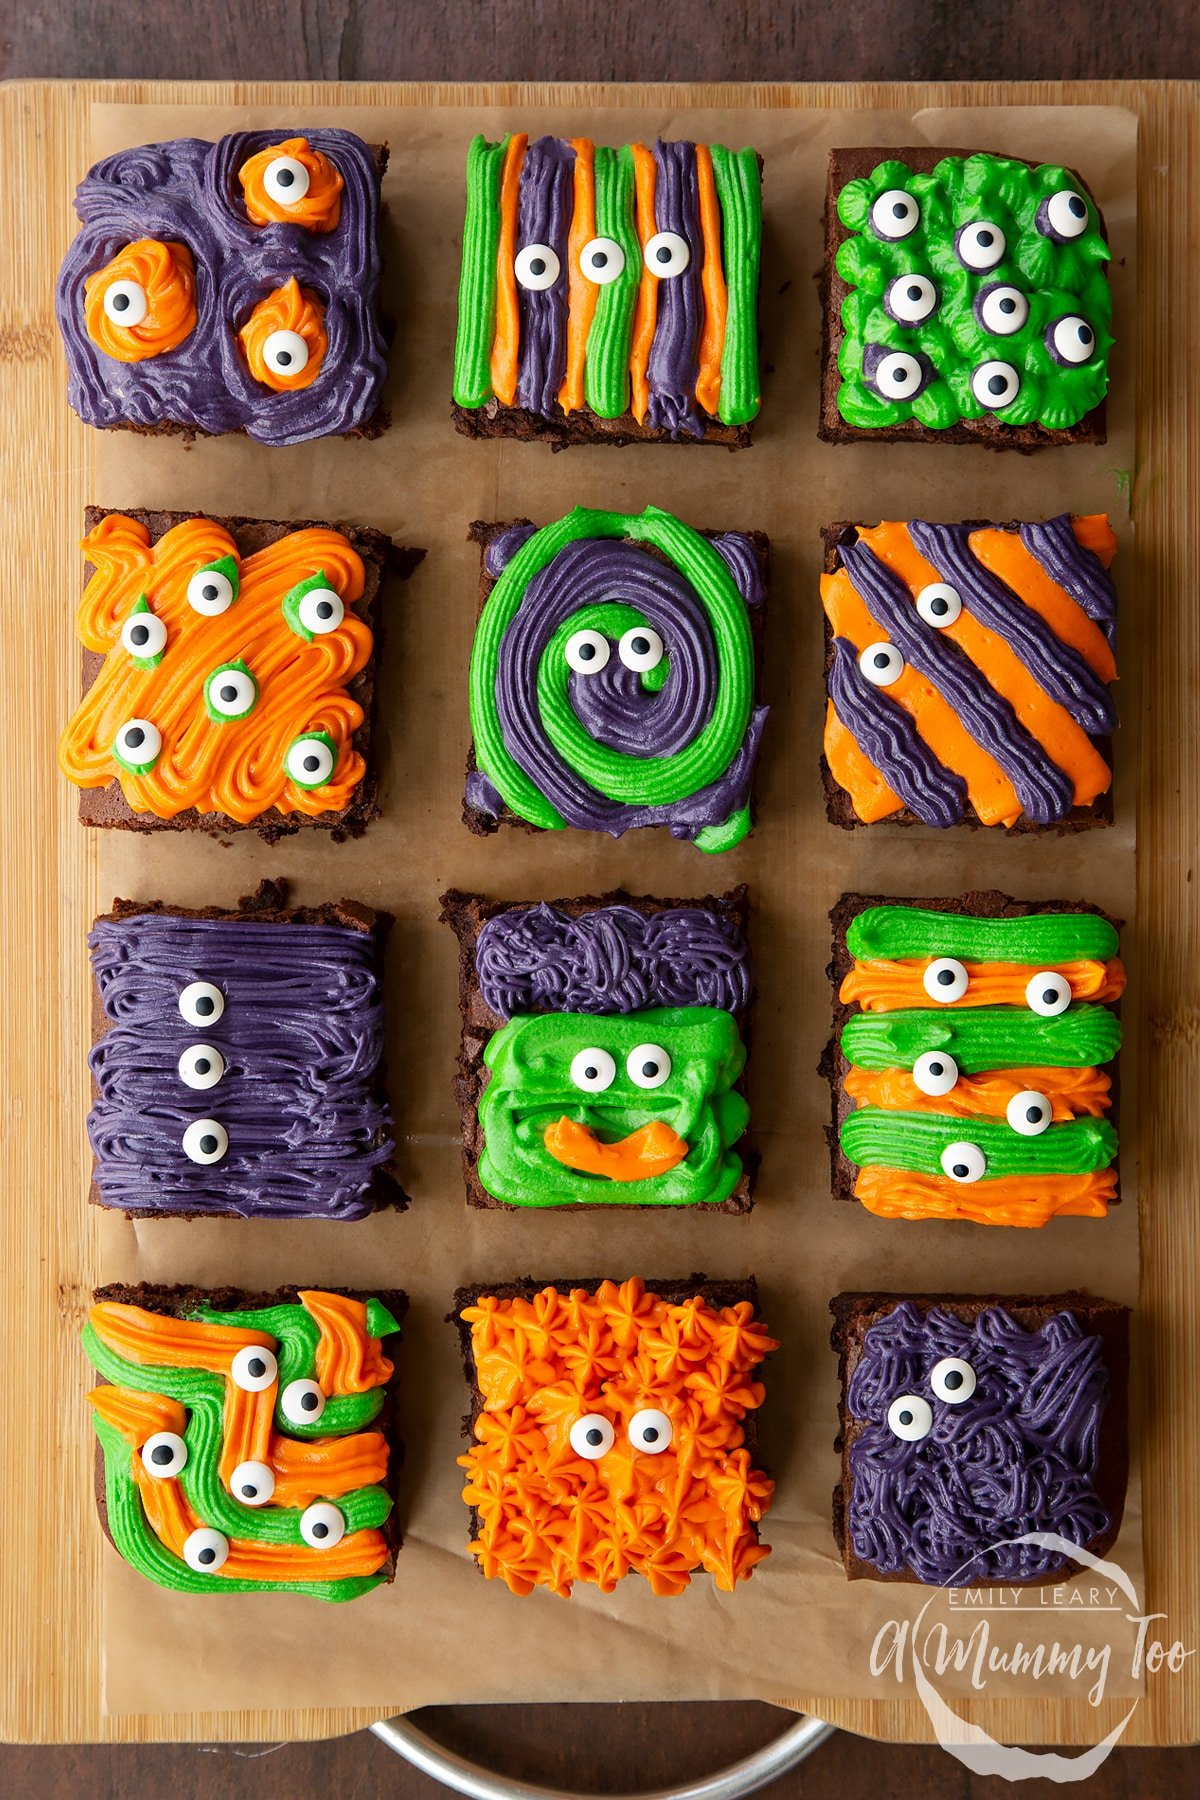 12 Halloween brownies arranged on a board lined with baking paper. The brownies are decorated with purple, green and orange frosting and candy eyes.